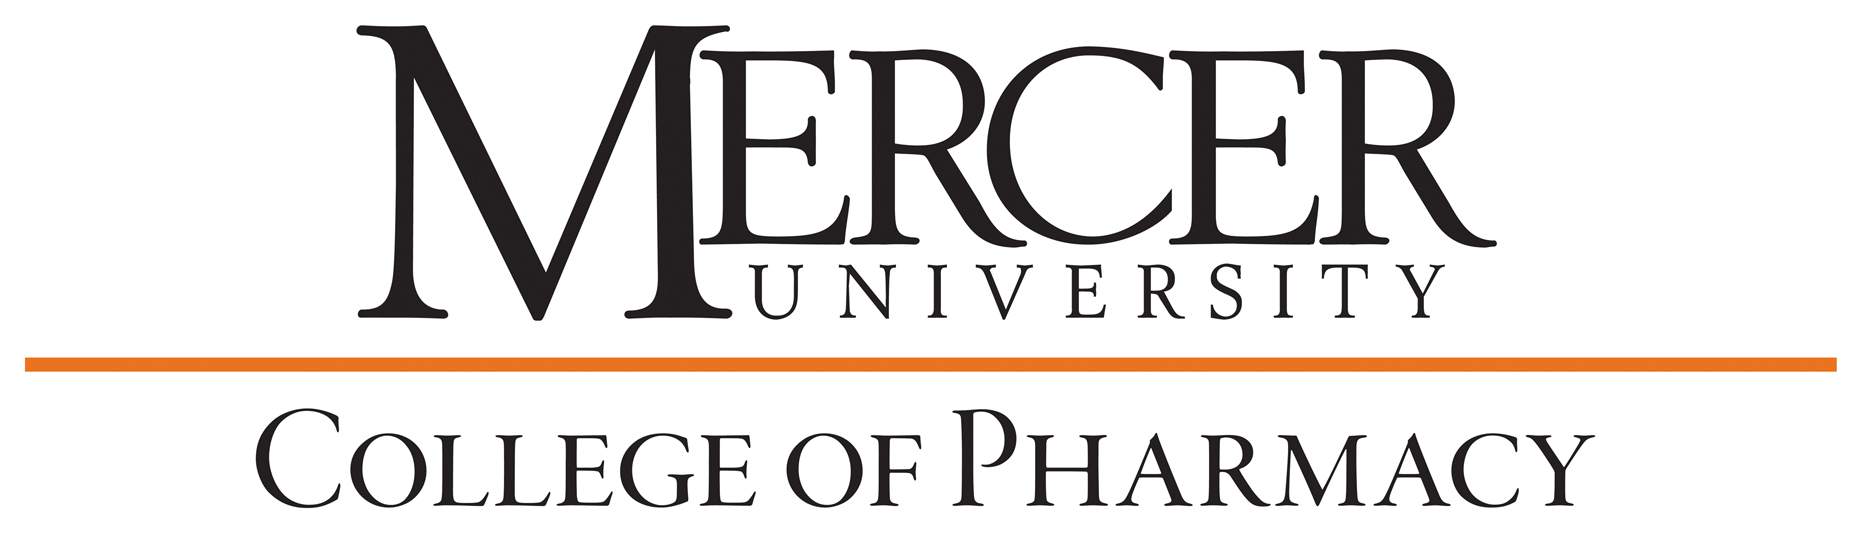 MercerWordmark_CollegeofPharmacy